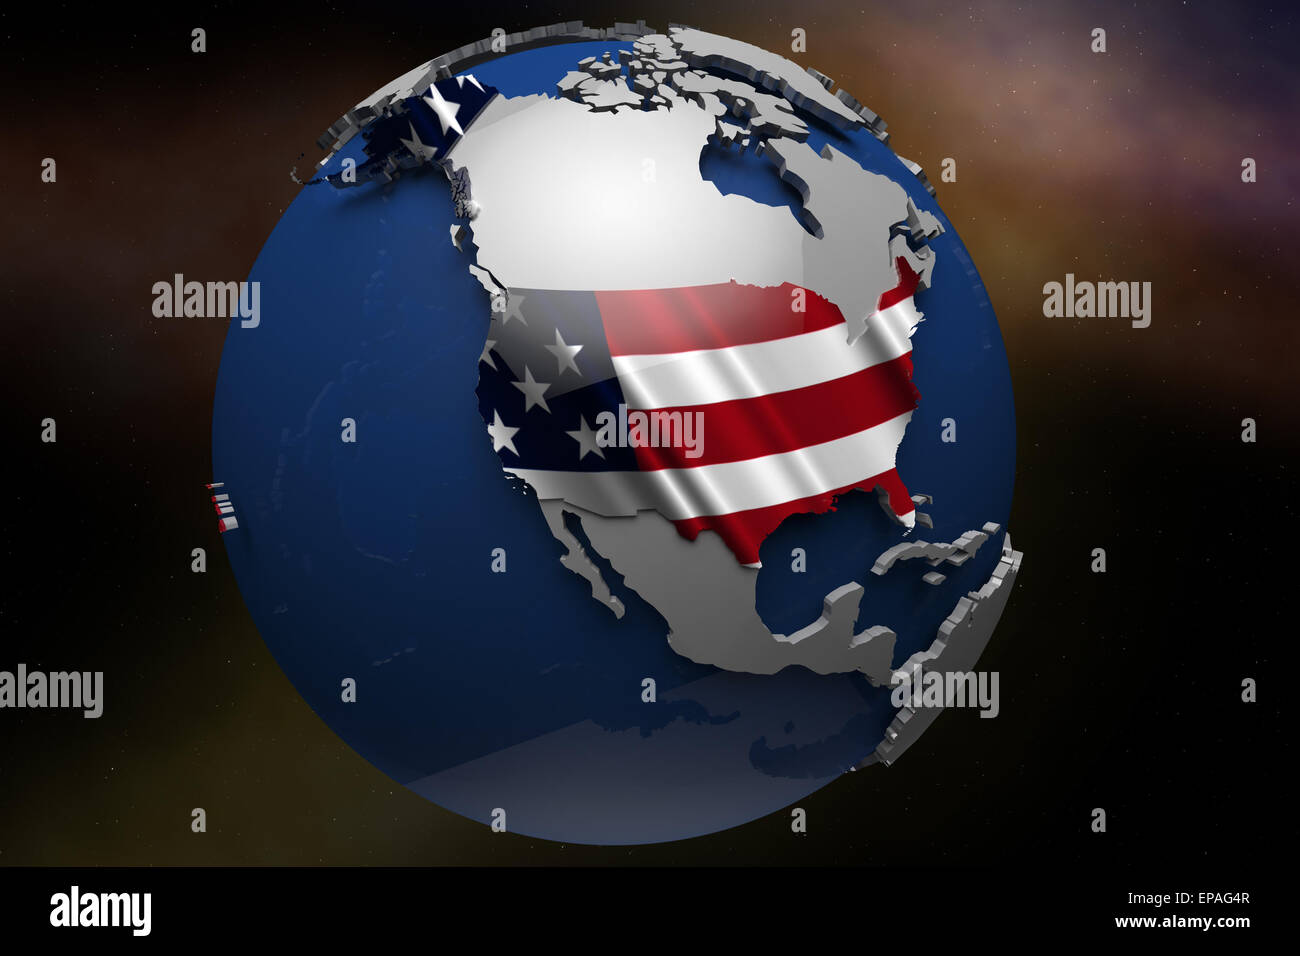 United States Map Globe Stock Photos & United States Map ... on earth map usa, globe earth map, globe world map, globe map of yemen, globe map of france, globe map of israel, globe map of egypt, globe map of haiti, globe map of netherlands, globe map of new zealand, globe map of holland, globe map of malaysia, globe canada, new 7 wonders of usa, globe map of greece, globe map of guyana, map from usa,